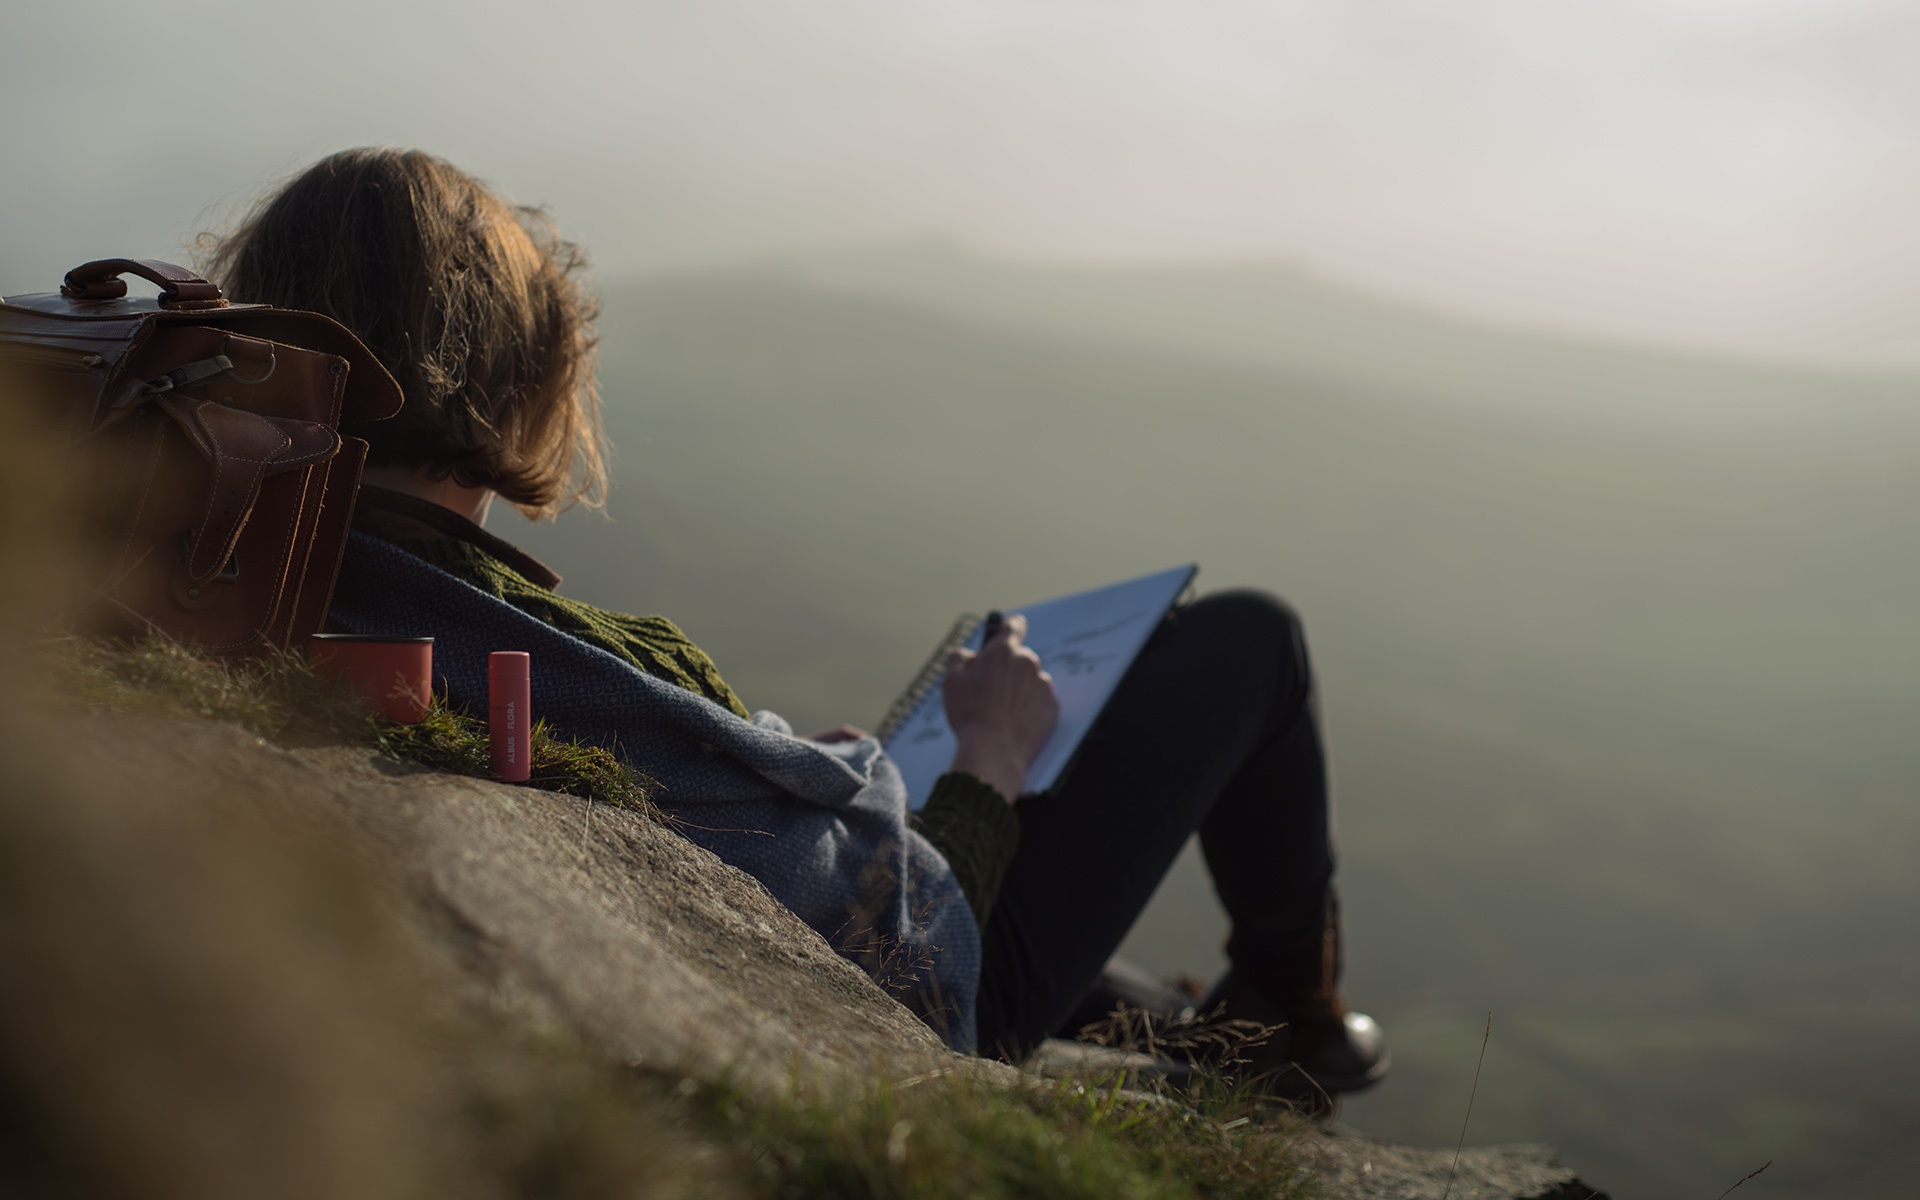 Albus_outdoor_lifestyle_Product_photography_Brendon_tyree_Peak_district-(1)